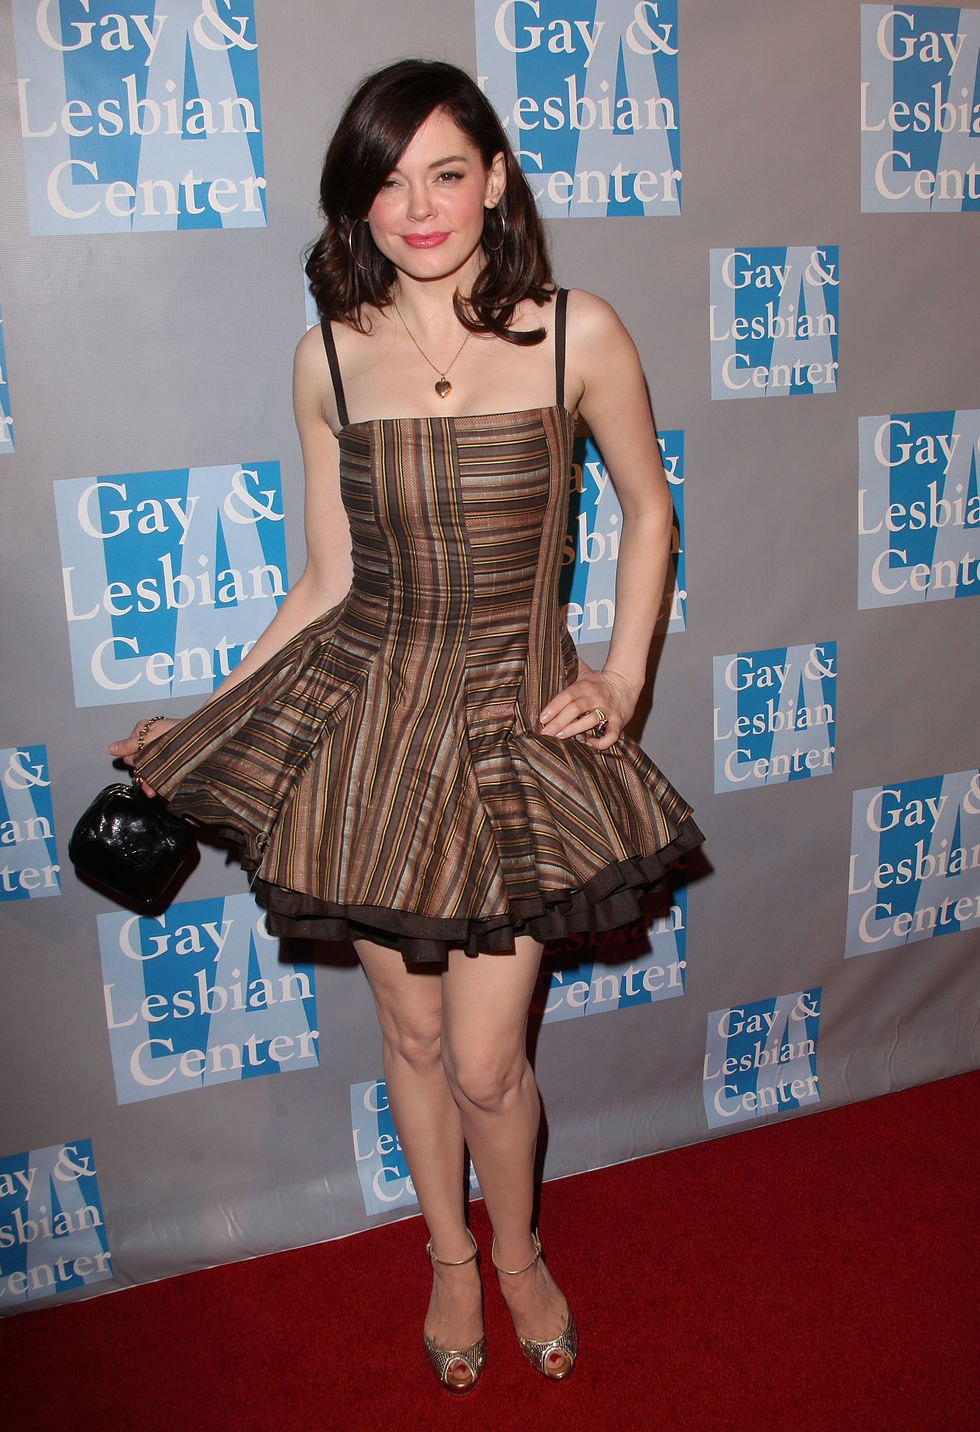 rose-mcgowan-an-evening-with-women-celebrating-art-music-and-equality-in-beverly-hills-01